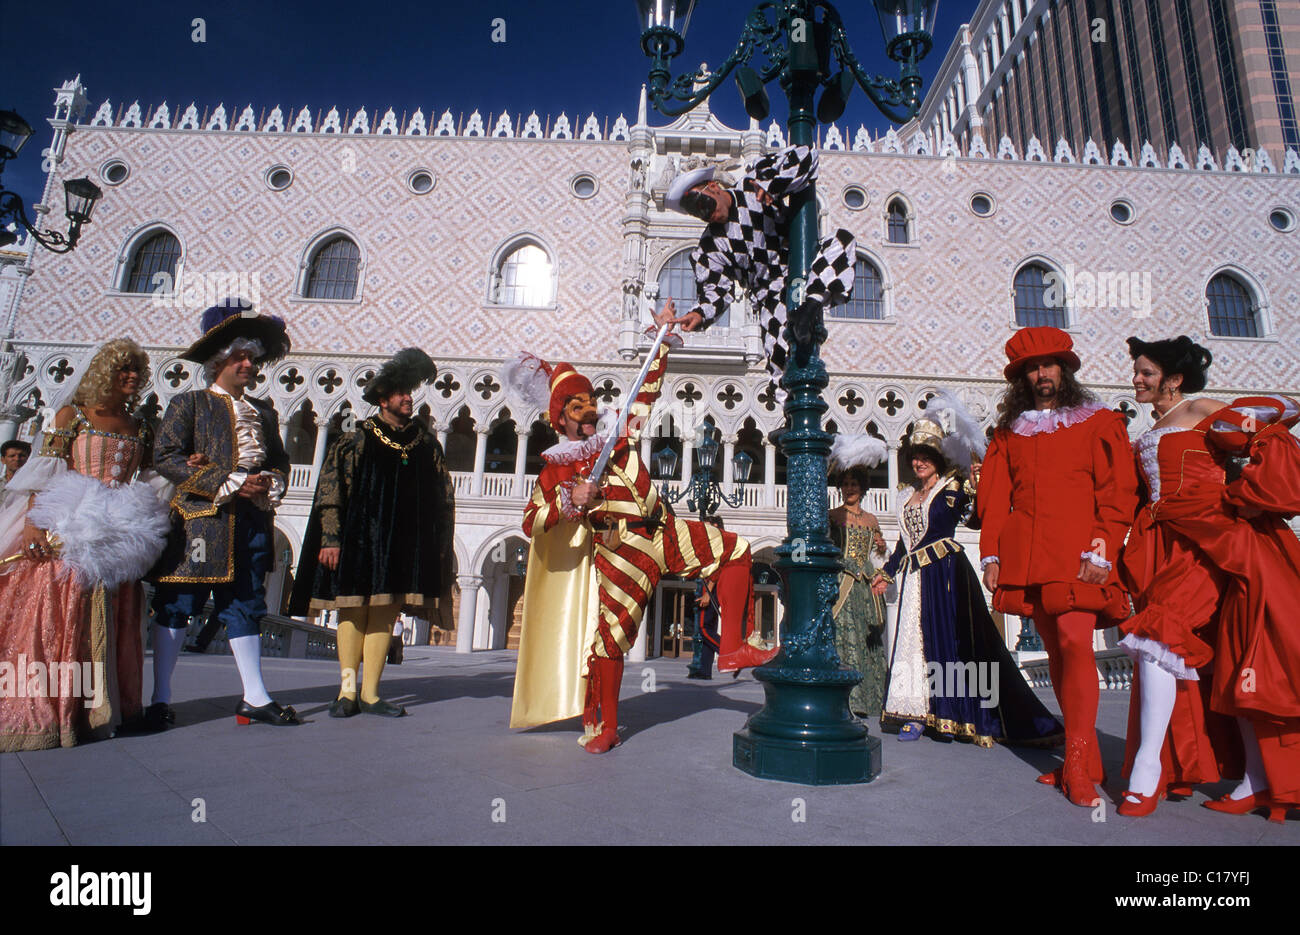 United States, Nevada, Las Vegas, opera's characters at the Venetian, last palace on the Strip - Stock Image